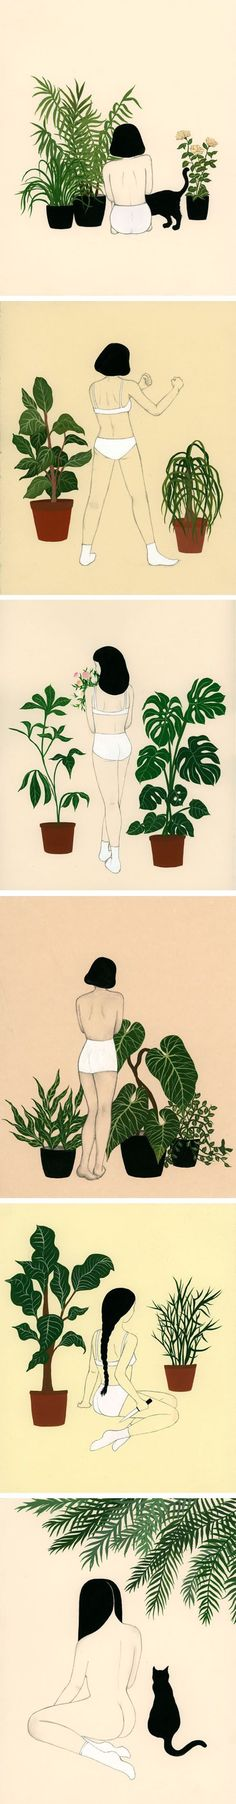 Dan-ah Kim on the LPP blog. all images via the artist.